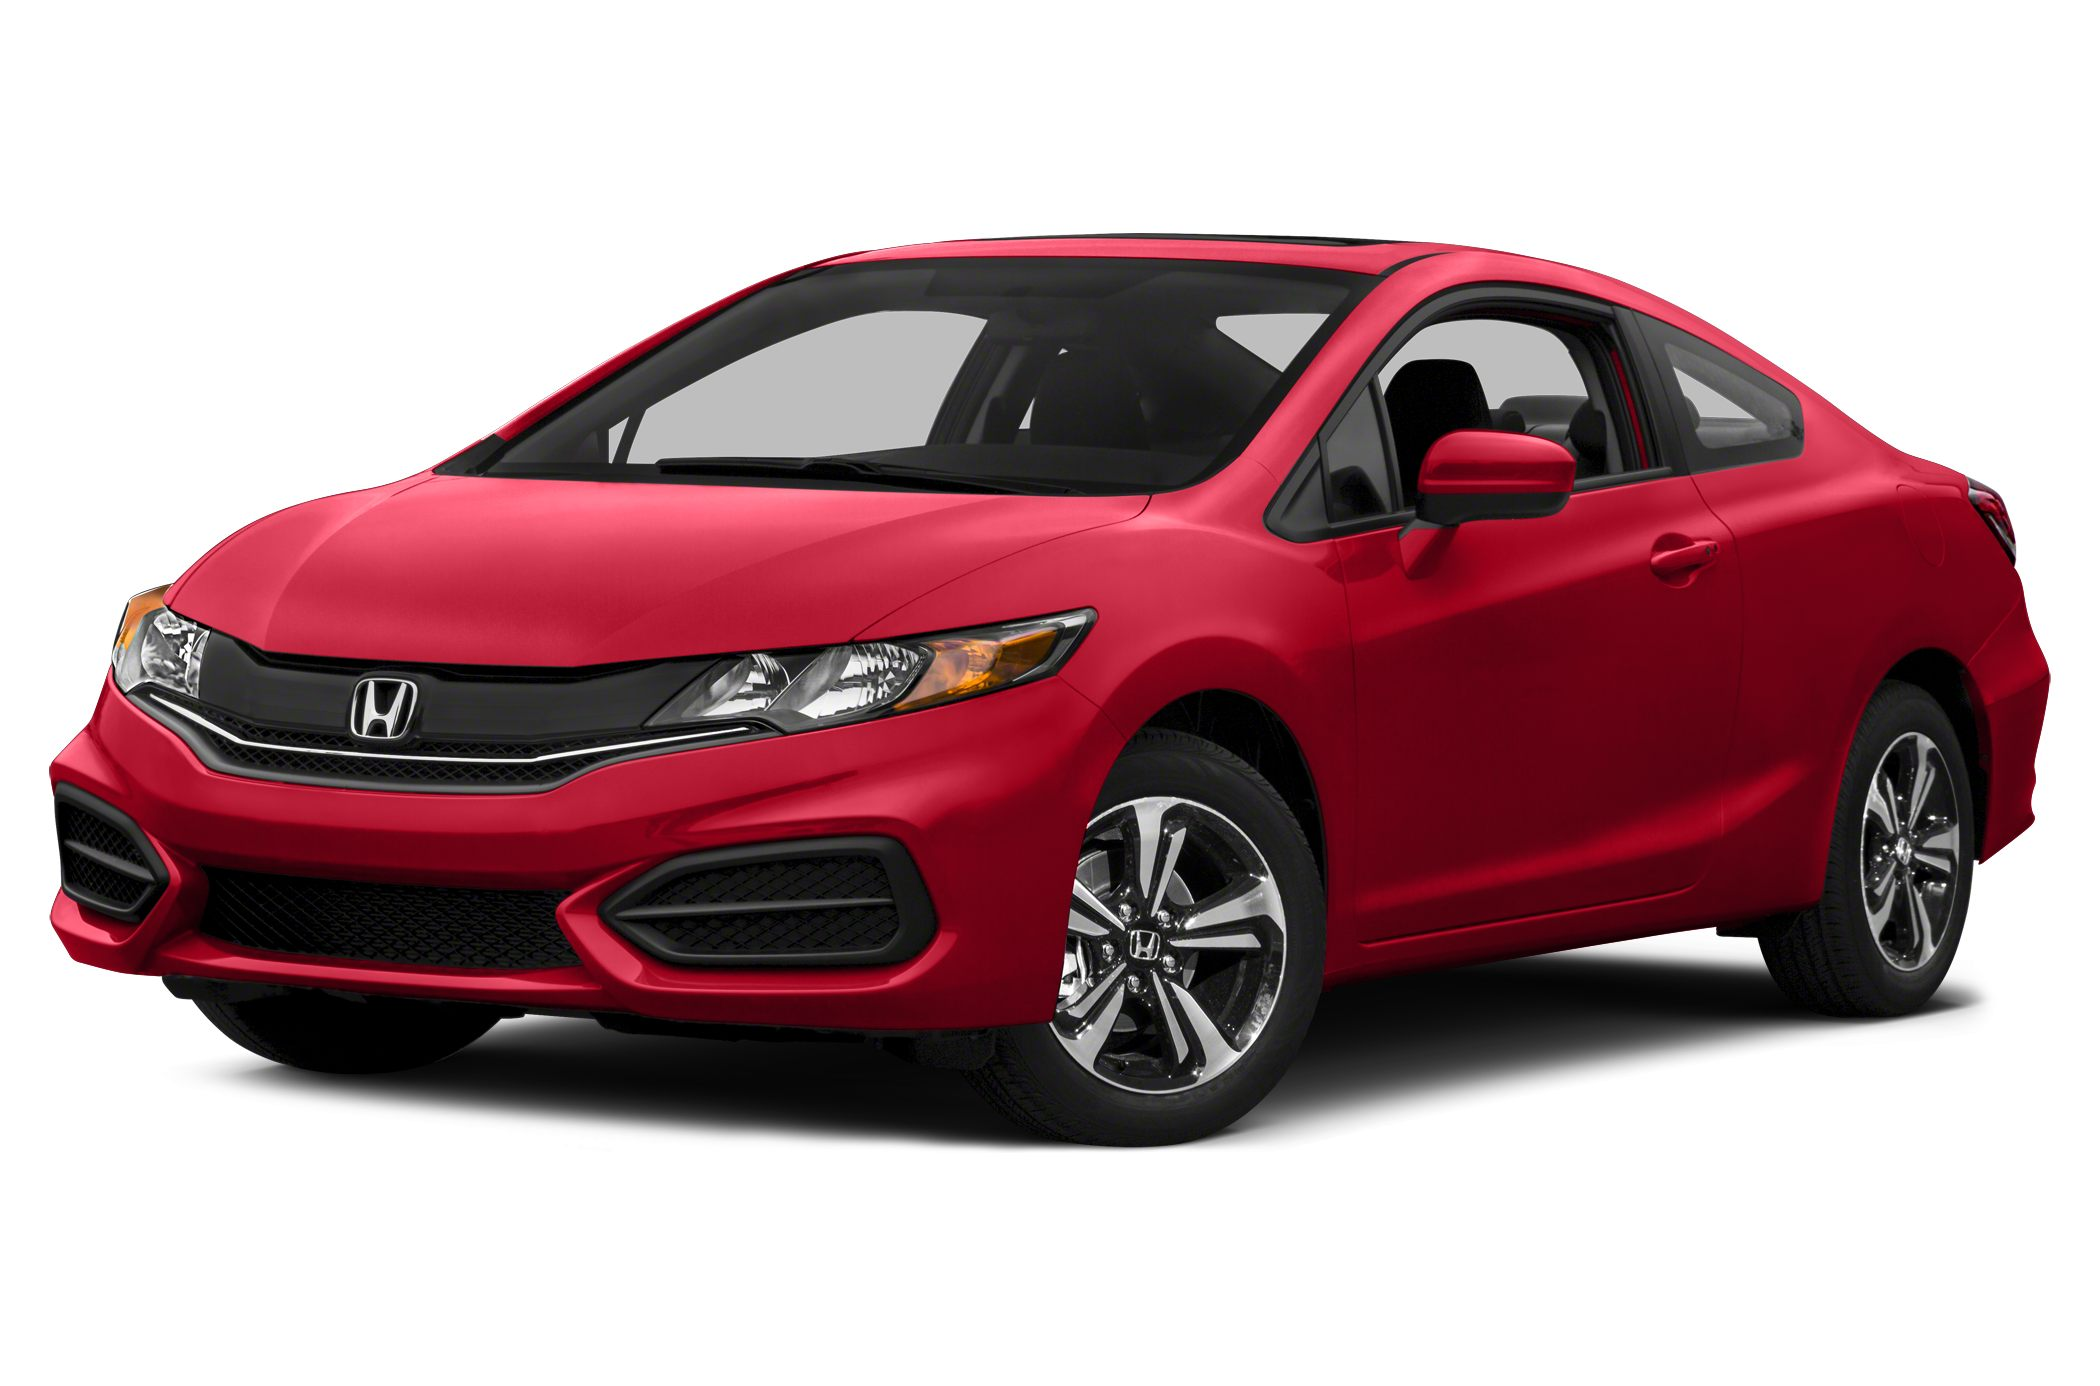 2015 Honda Civic LX Coupe for sale in Chicago for $19,080 with 6 miles.